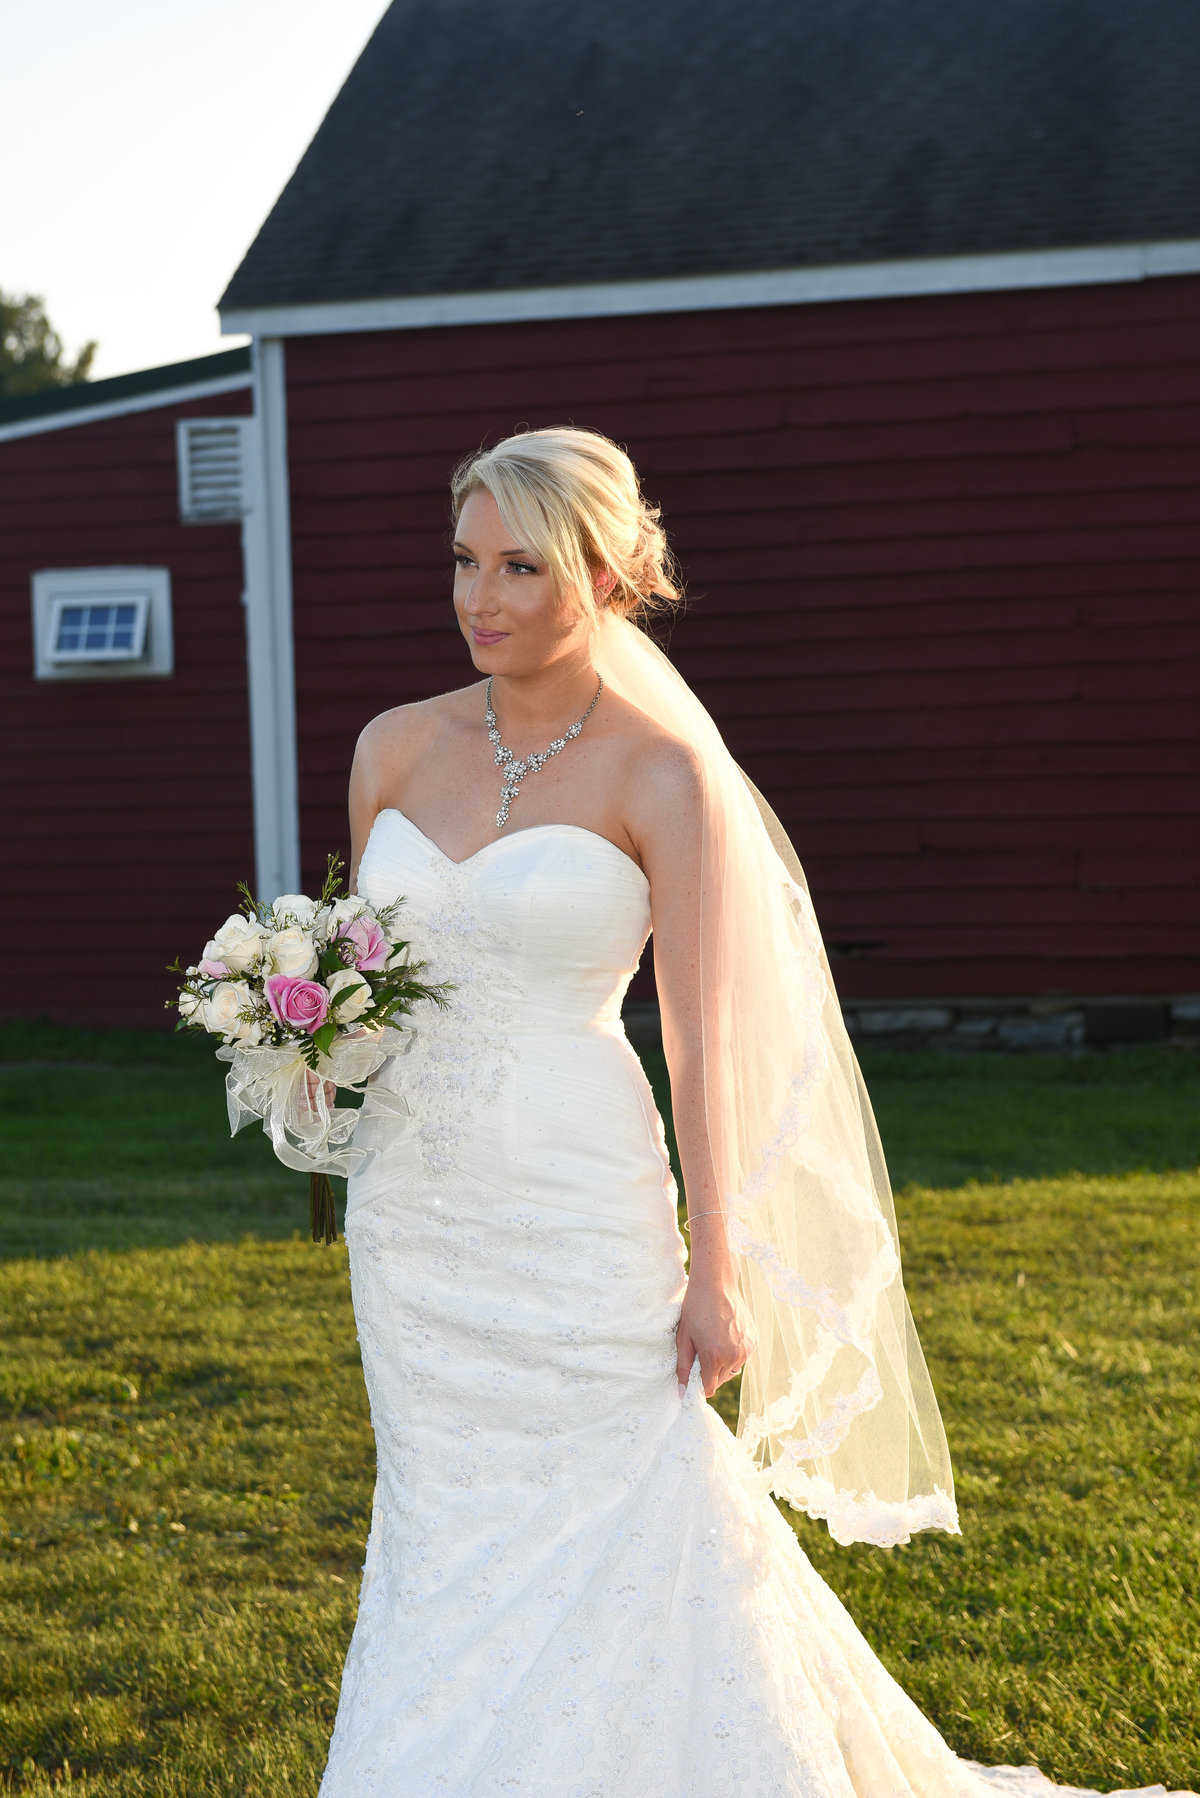 Mabee Farm Historic Site, Rotterdam Junction, NY , barn wedding, rustic wedding